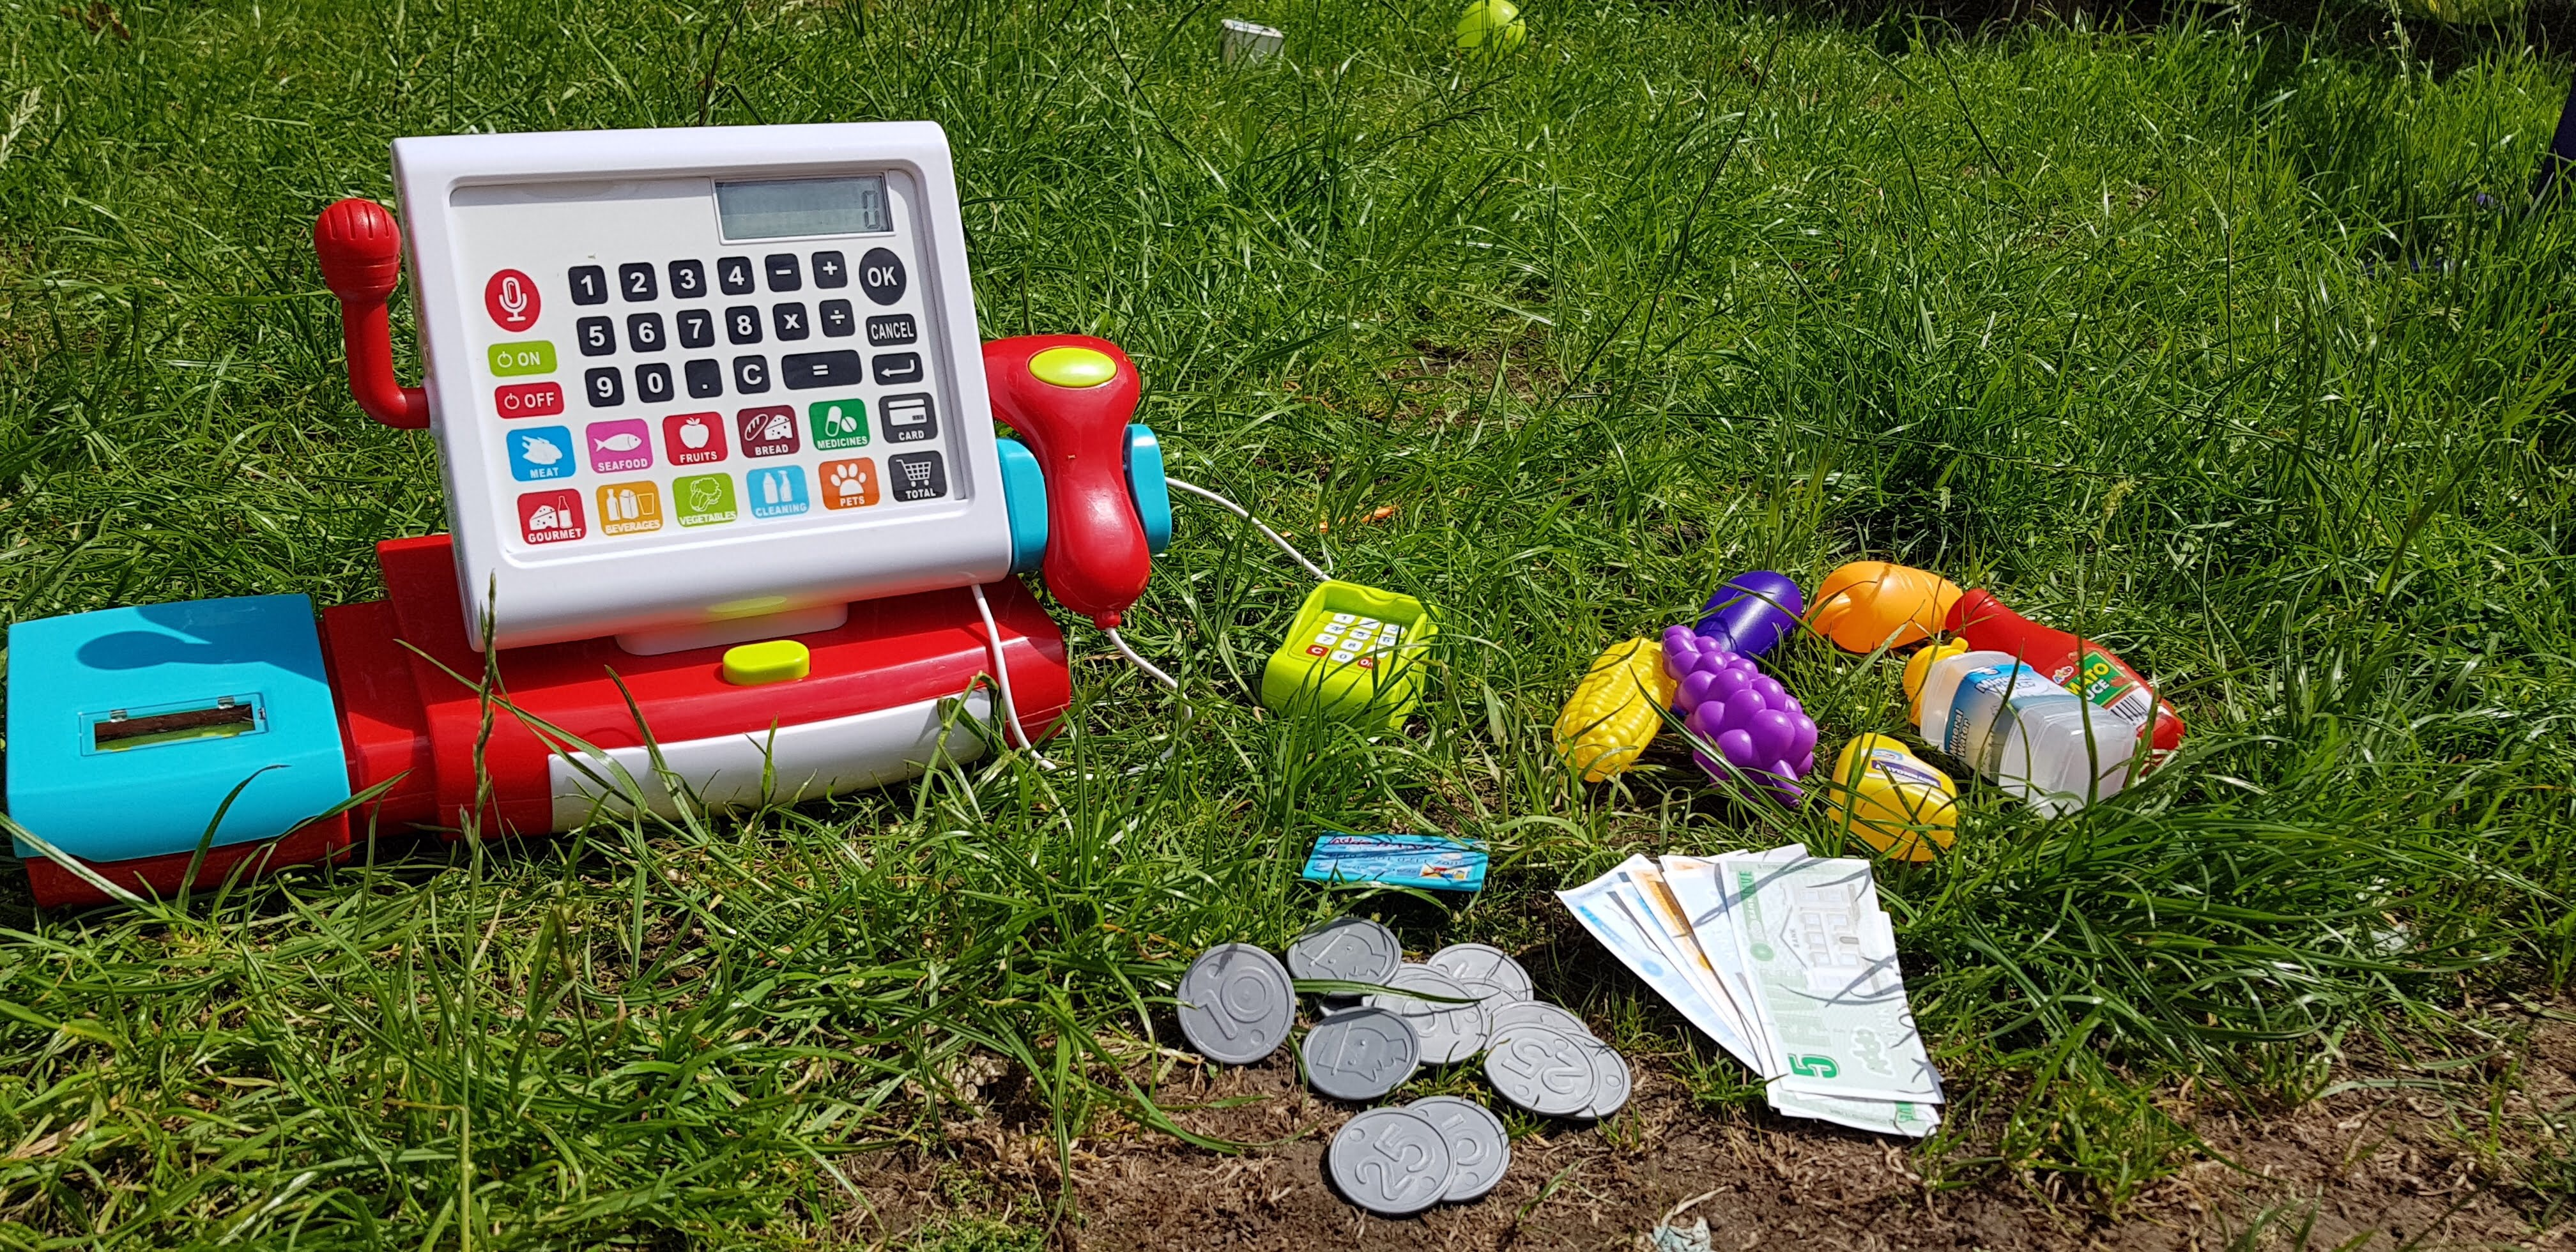 Cash register child development benefits raw childhood review Addo play busy me